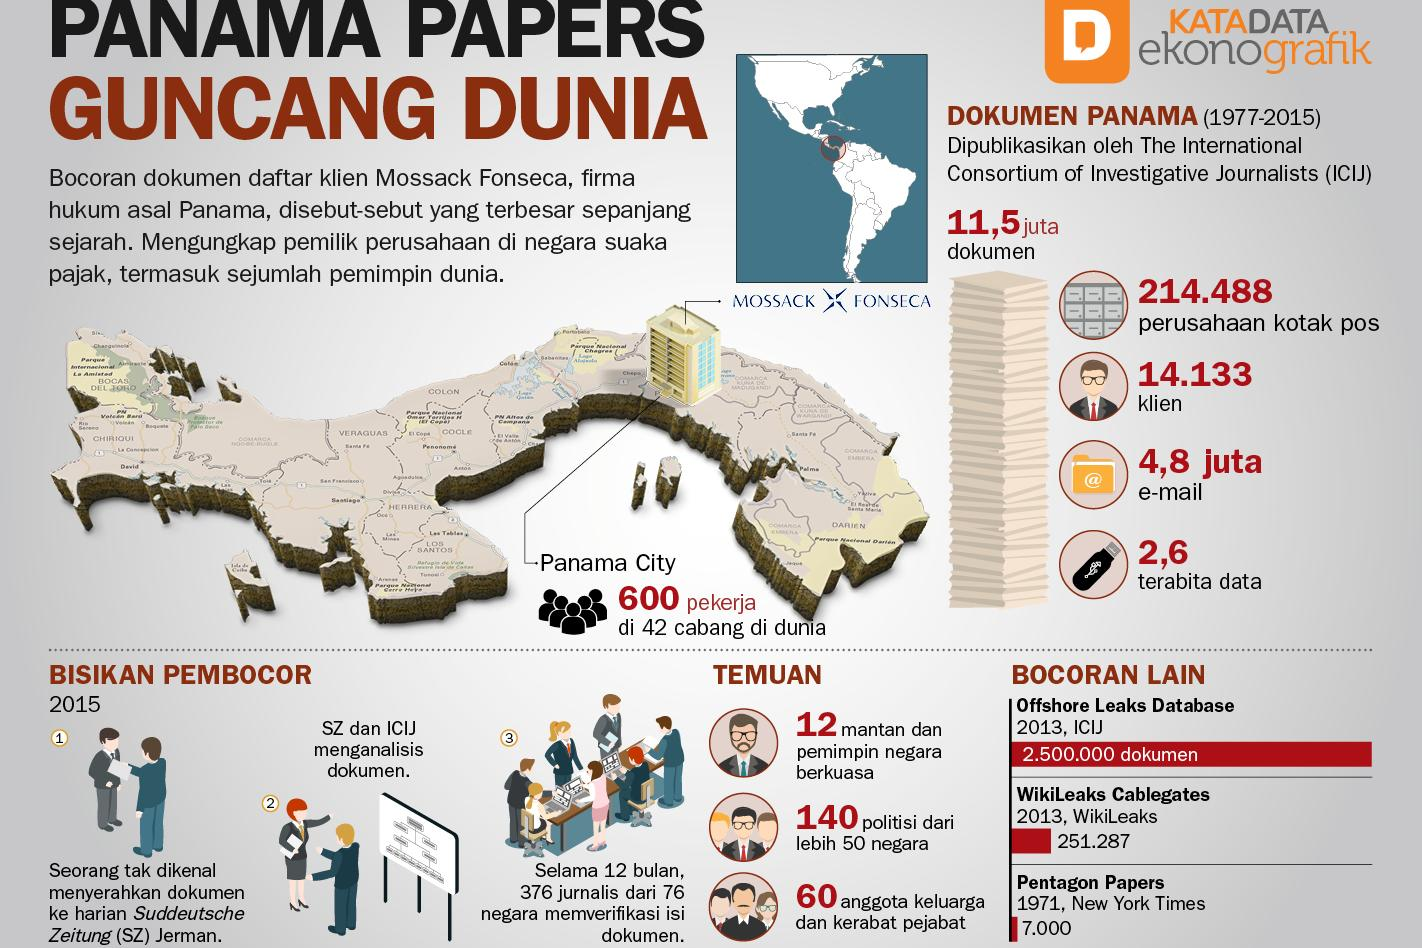 Panama Papers Guncang Dunia